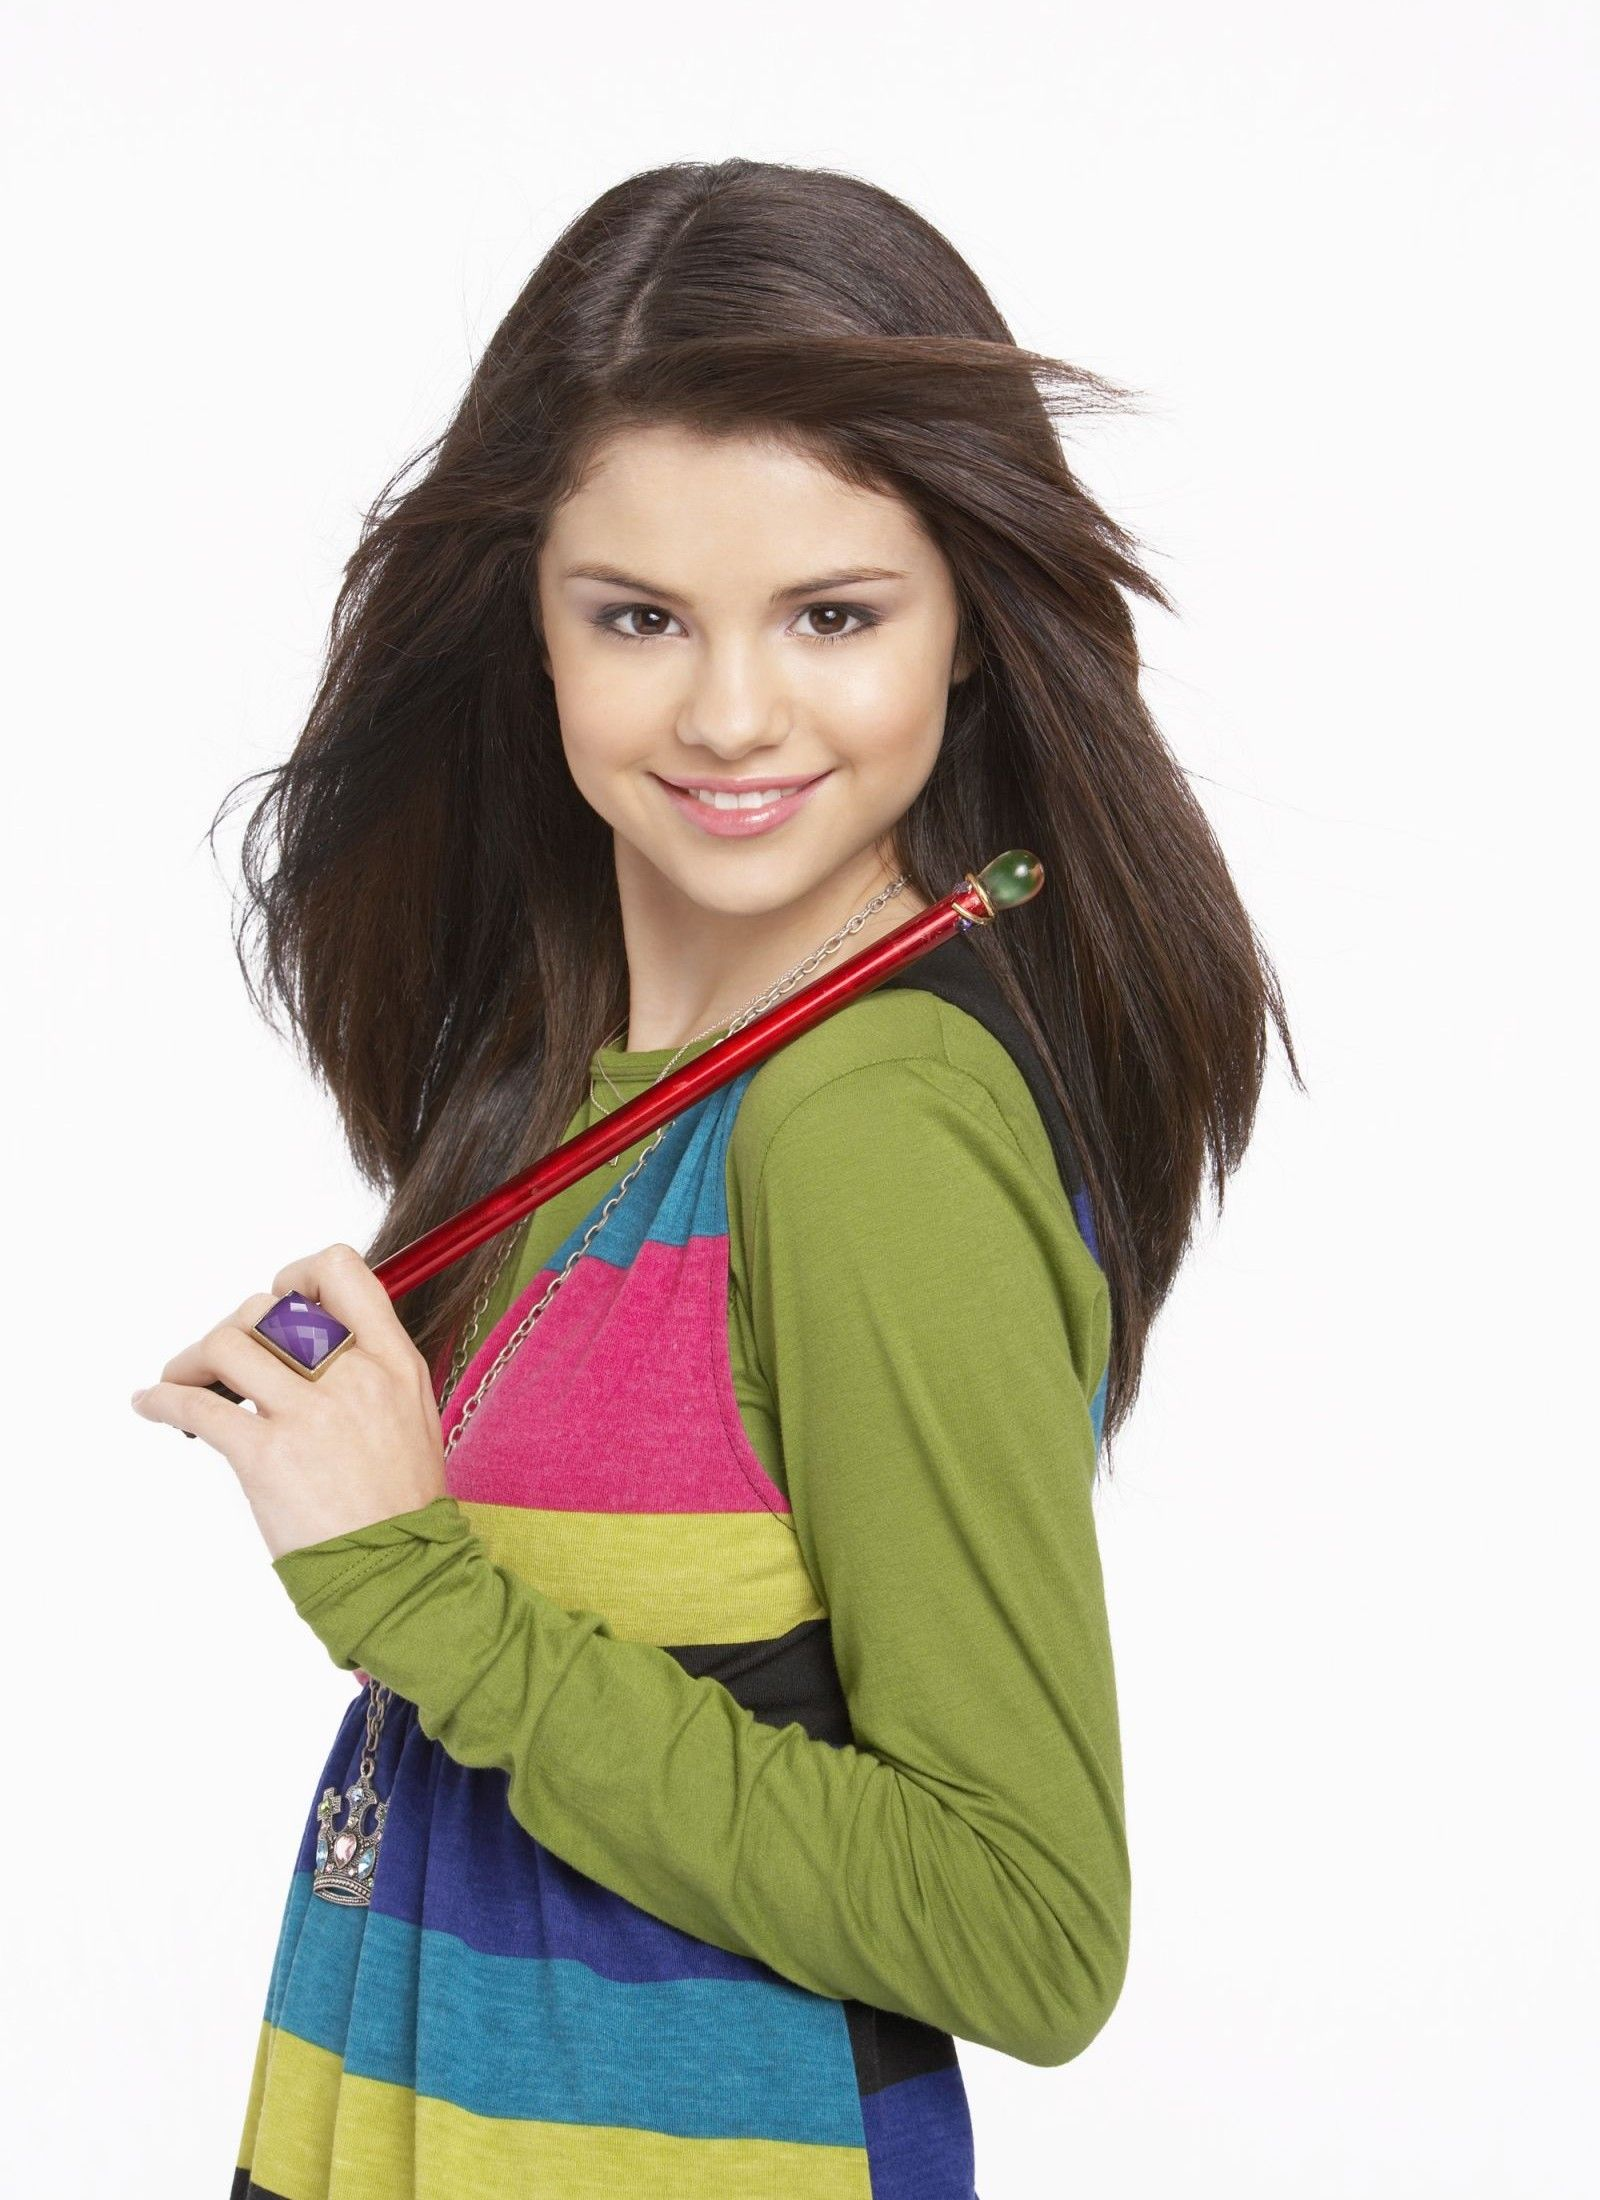 selena gomez wizards of waverly place photos selena gomez